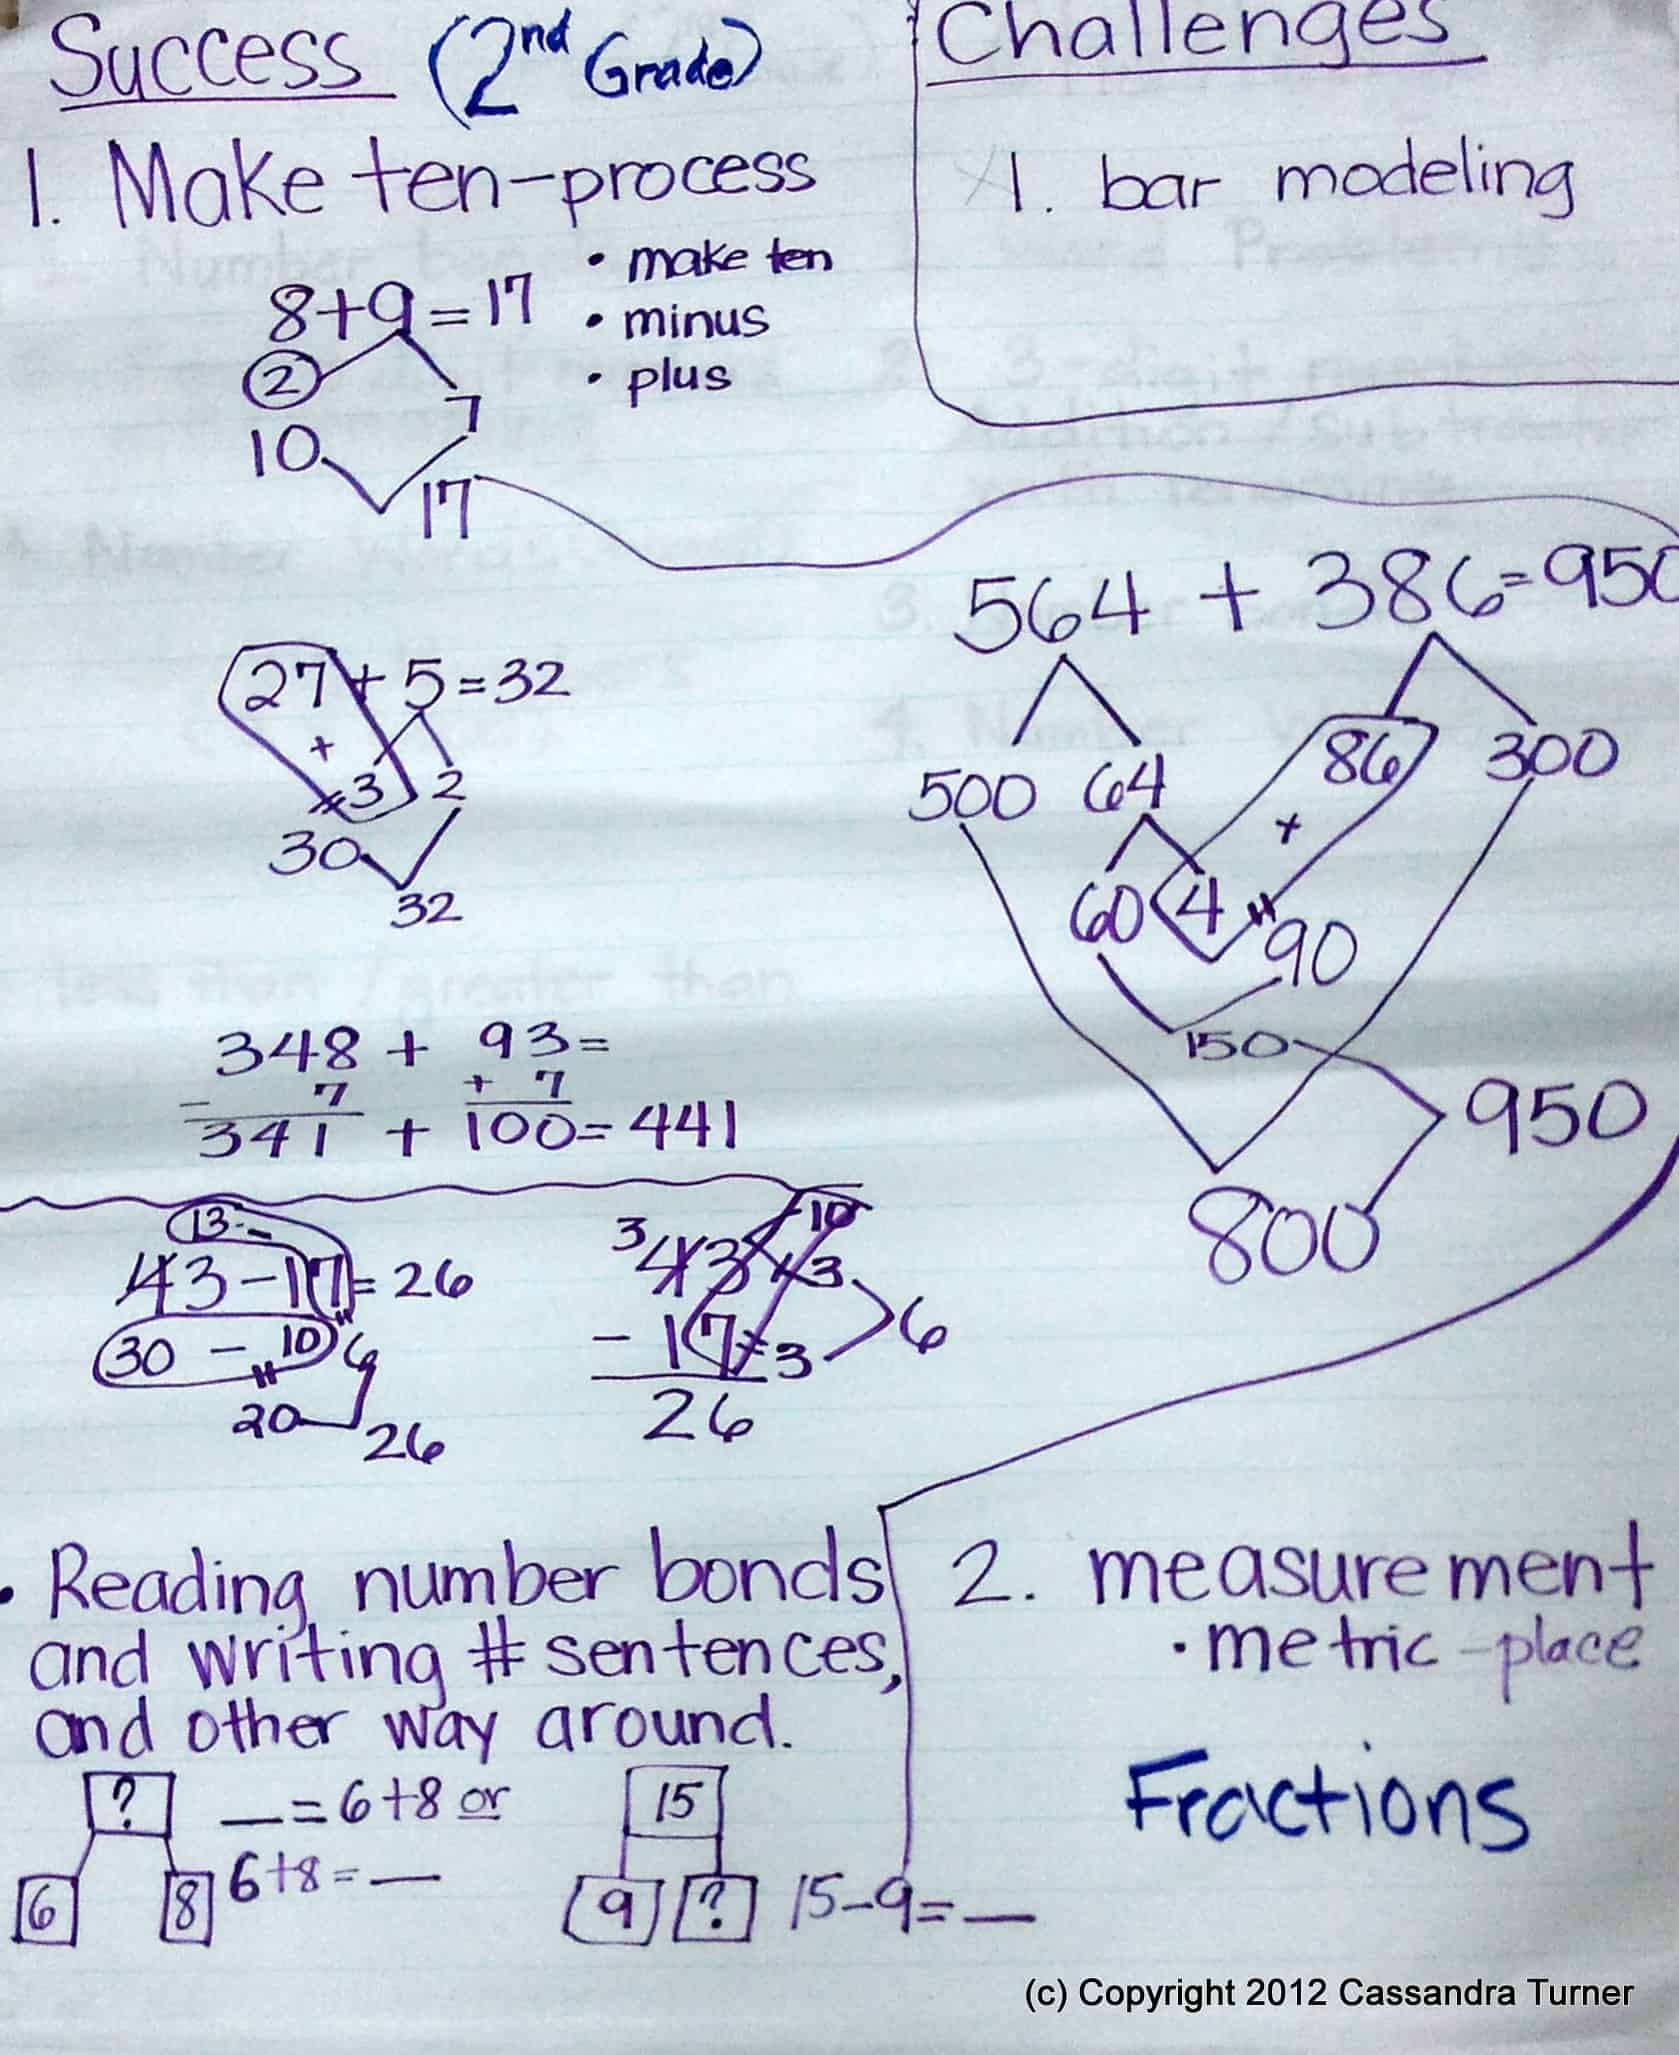 adopting singapore math challenges and successes